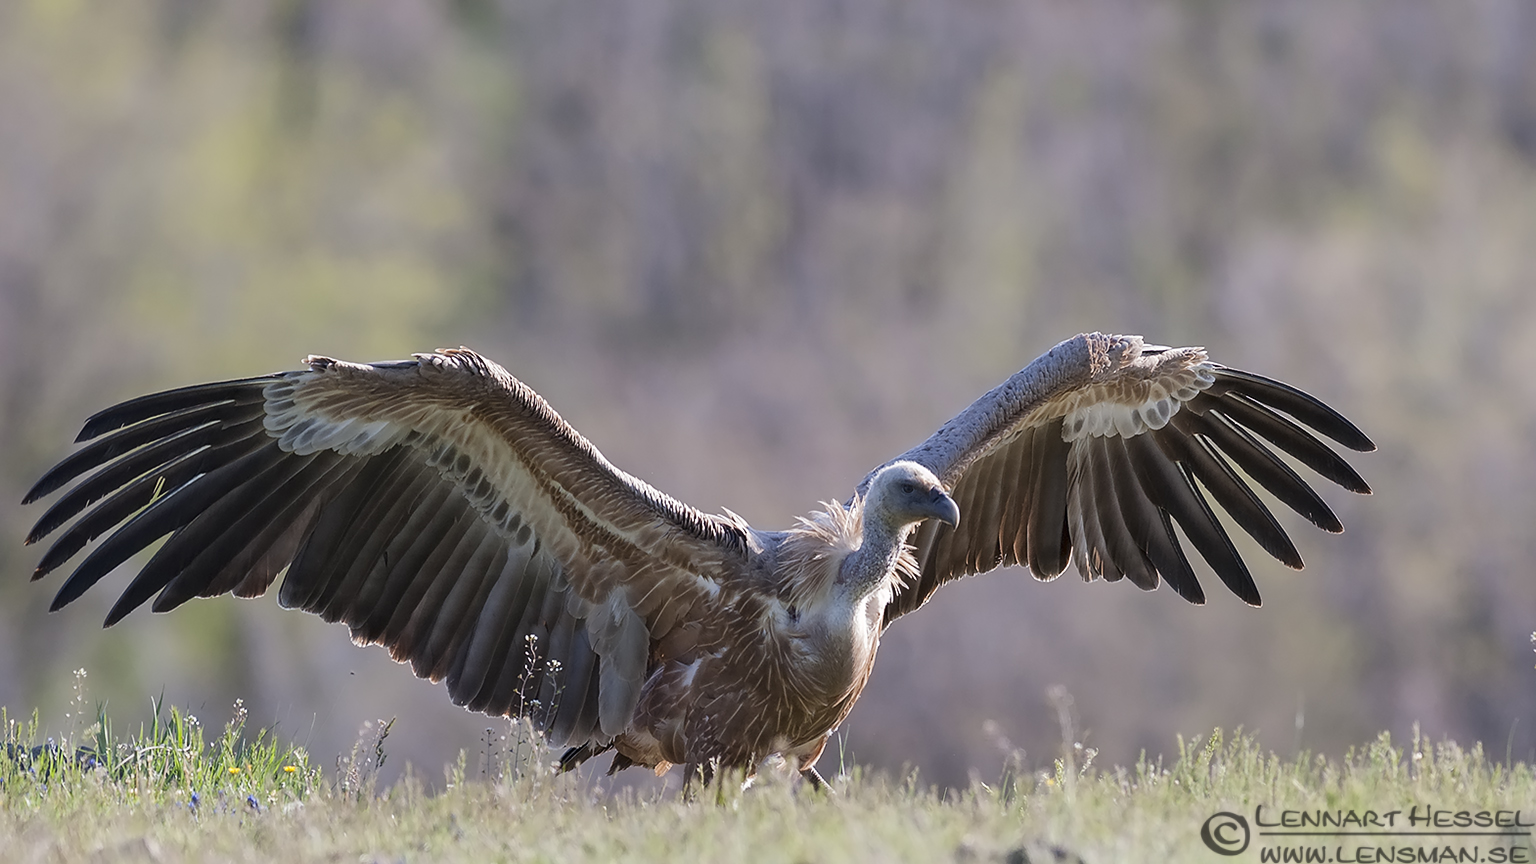 Threatening Griffon vultue in Bulgaria